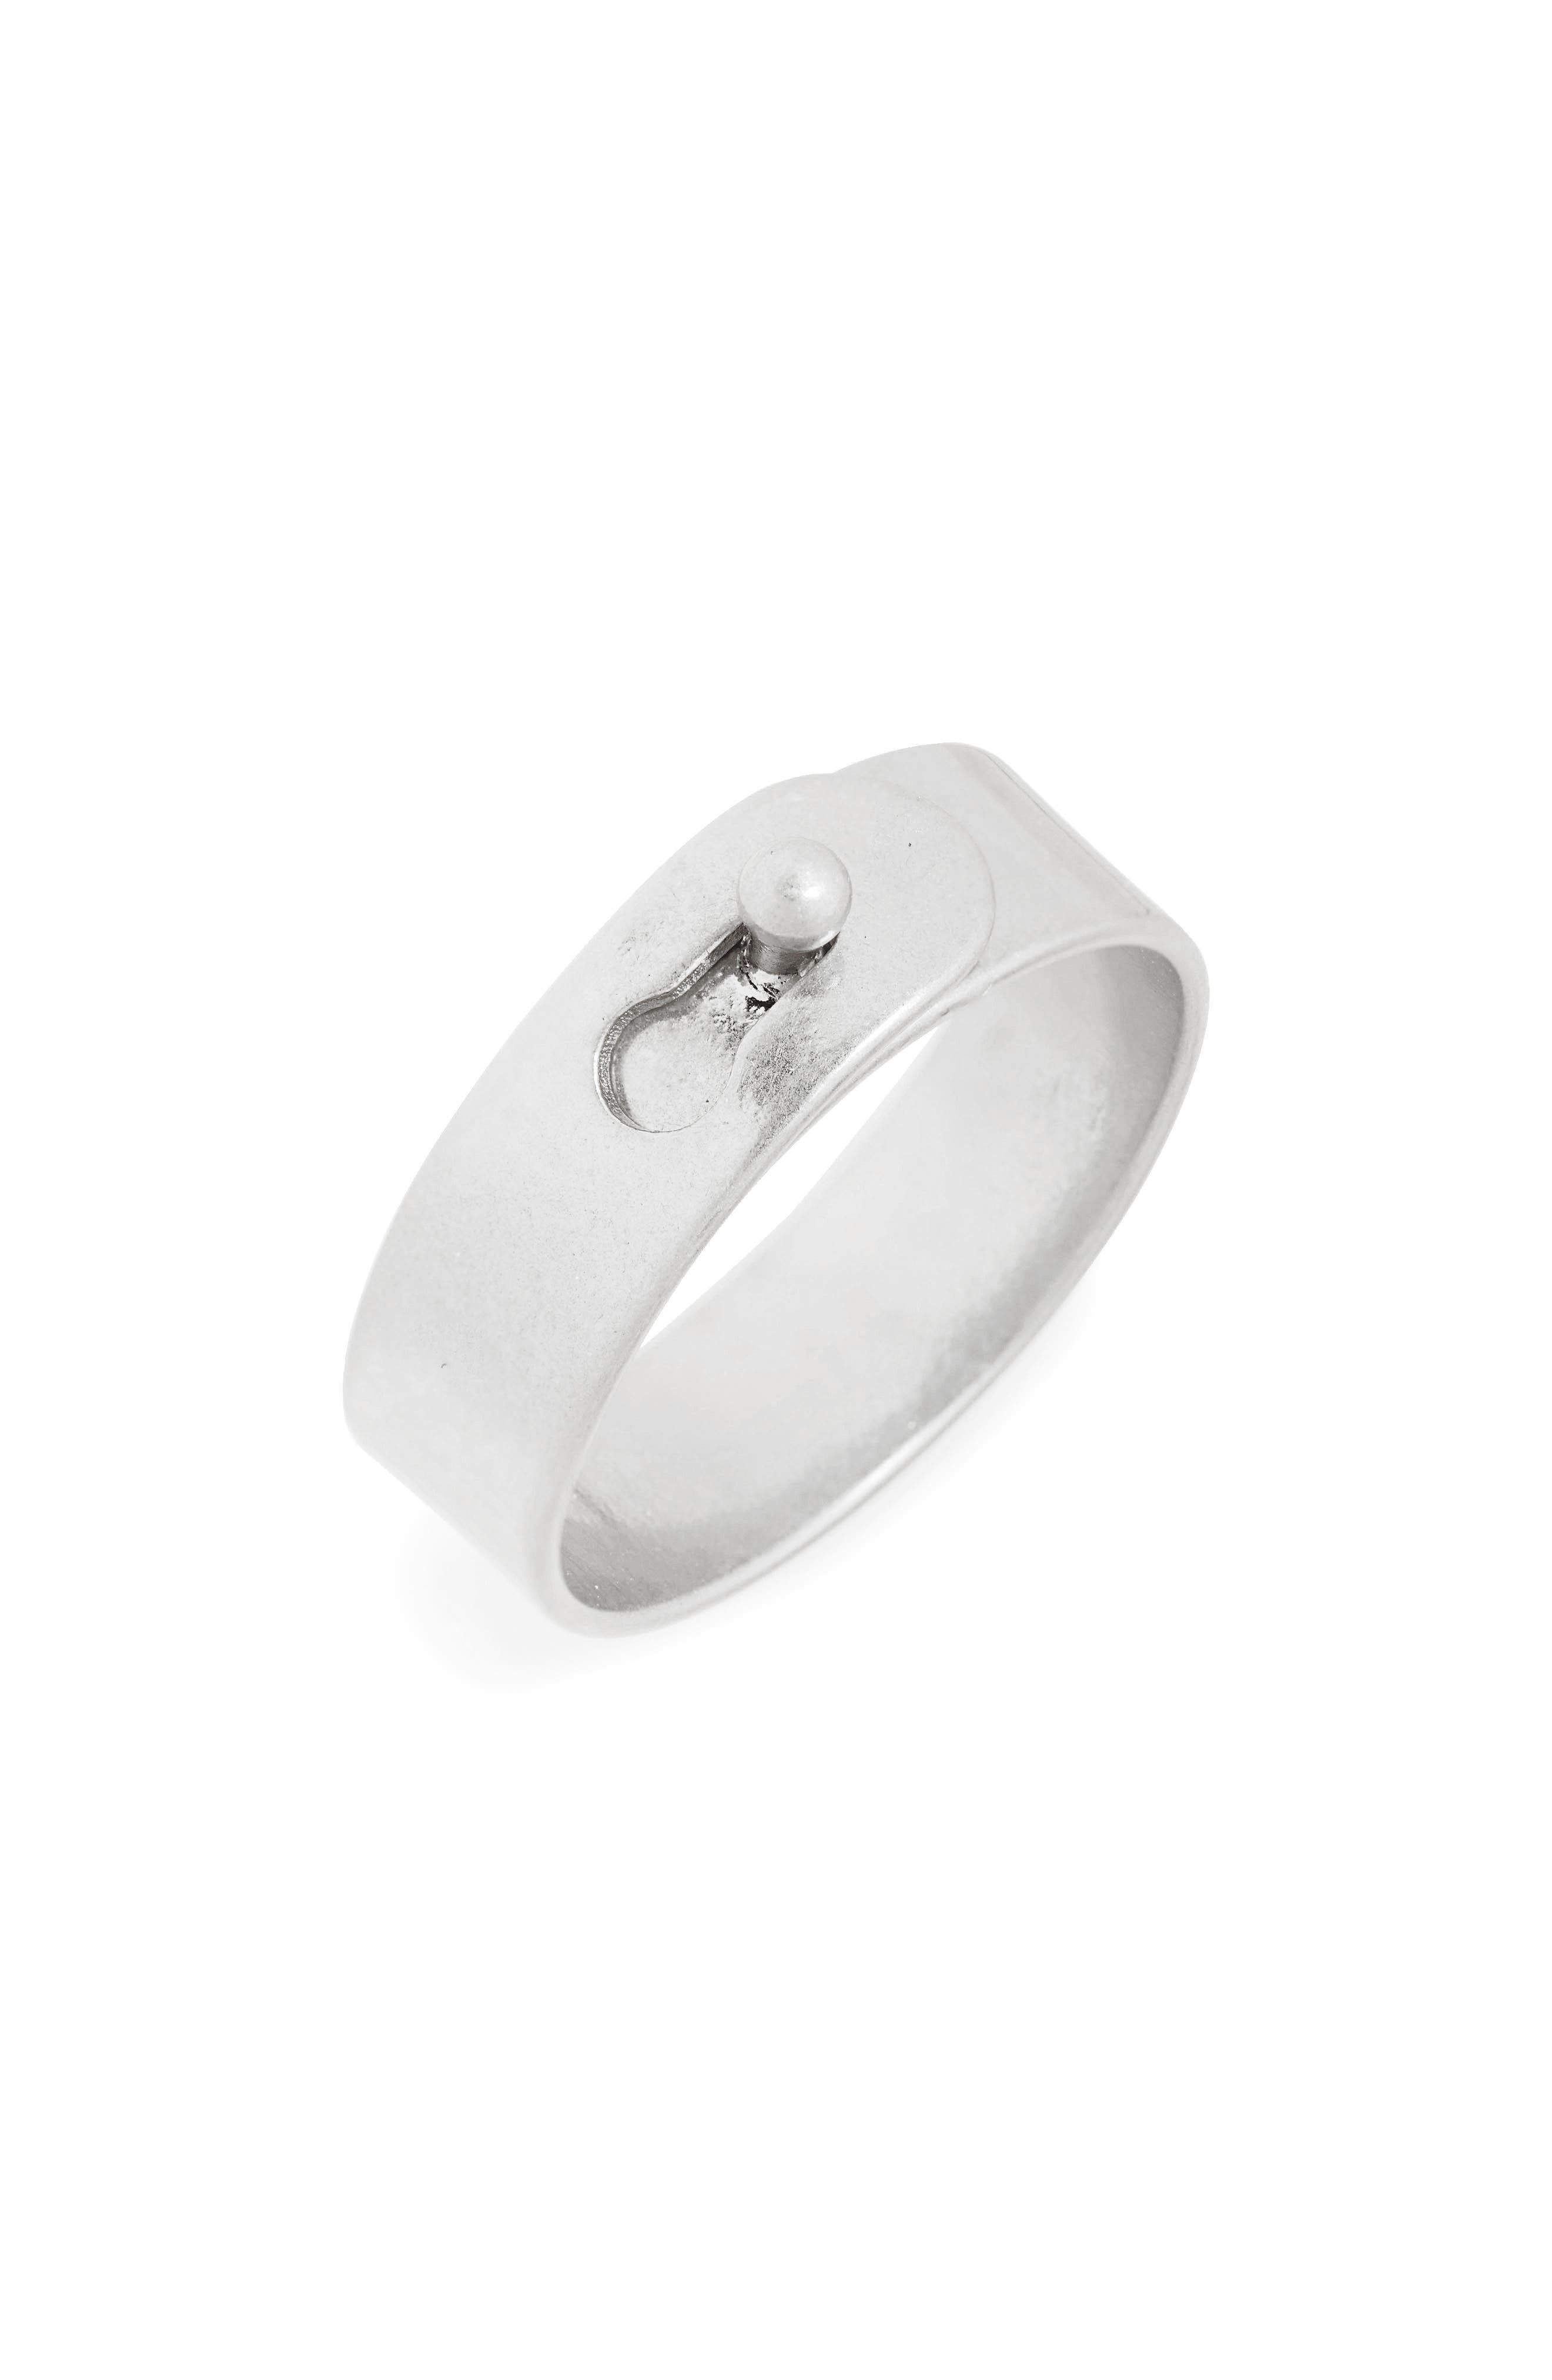 Glider Ring,                             Main thumbnail 1, color,                             LIGHT SILVER OX